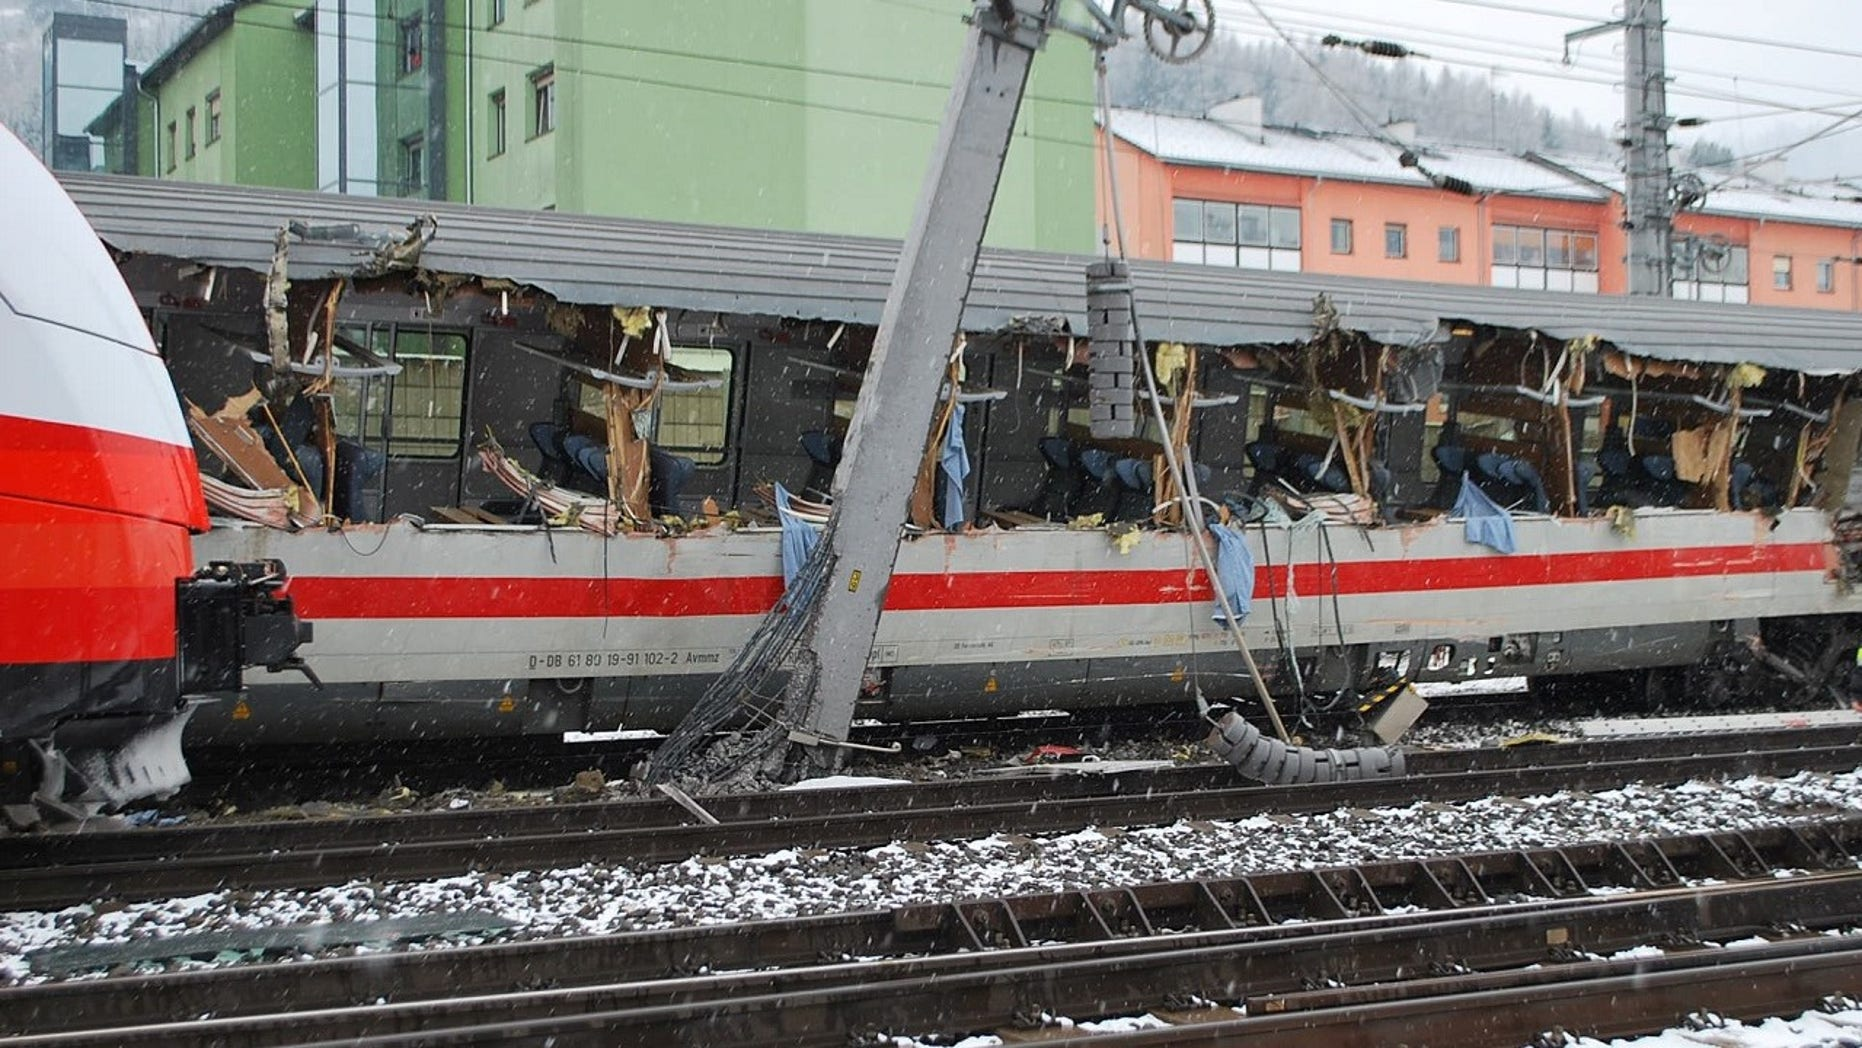 One woman was killed and 22 others were injured after two passenger trains collided in Austria.